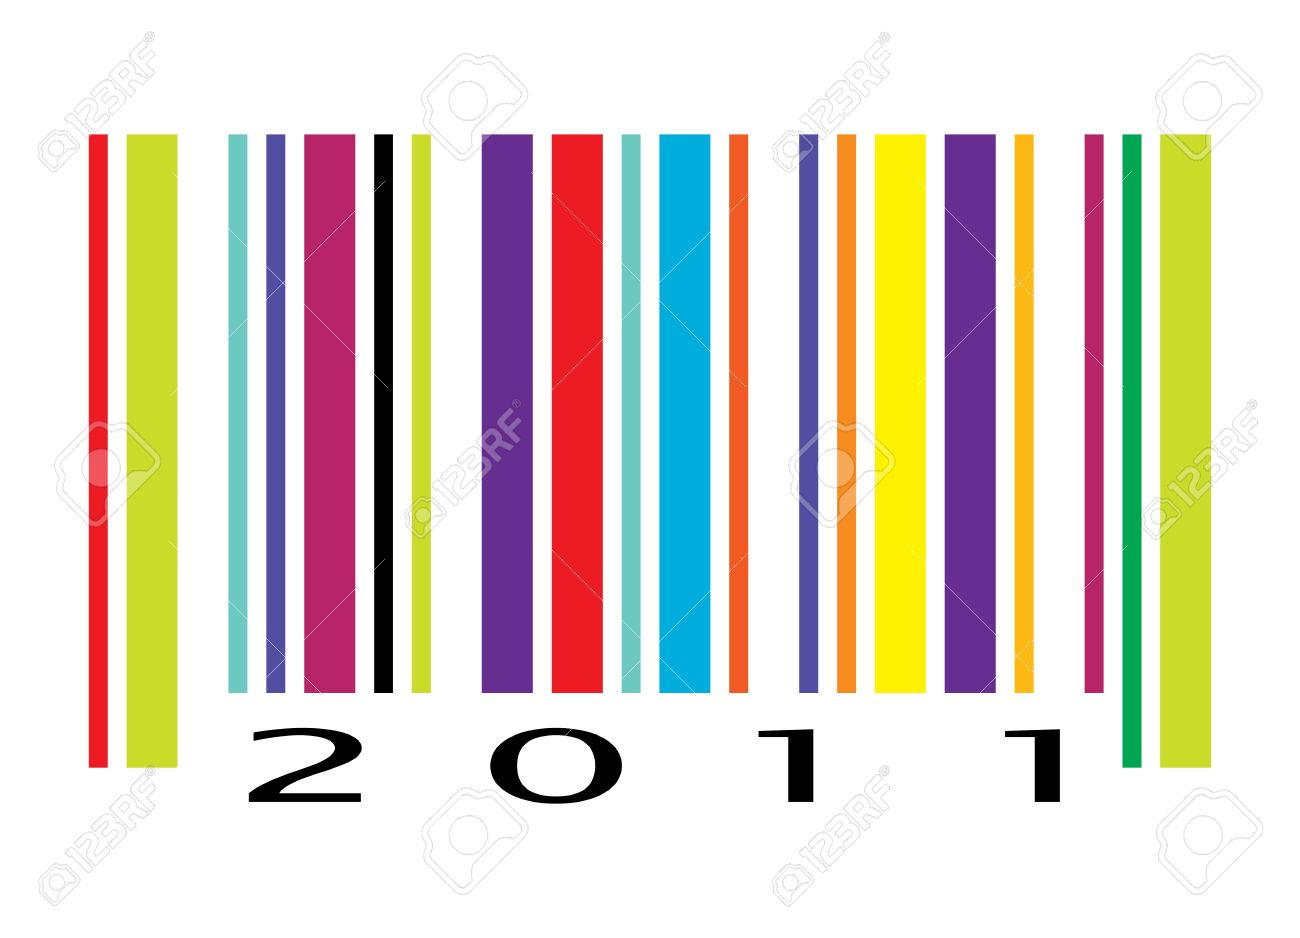 Barcode clipart happy birthday Clipart barcode Zone Cliparts Color